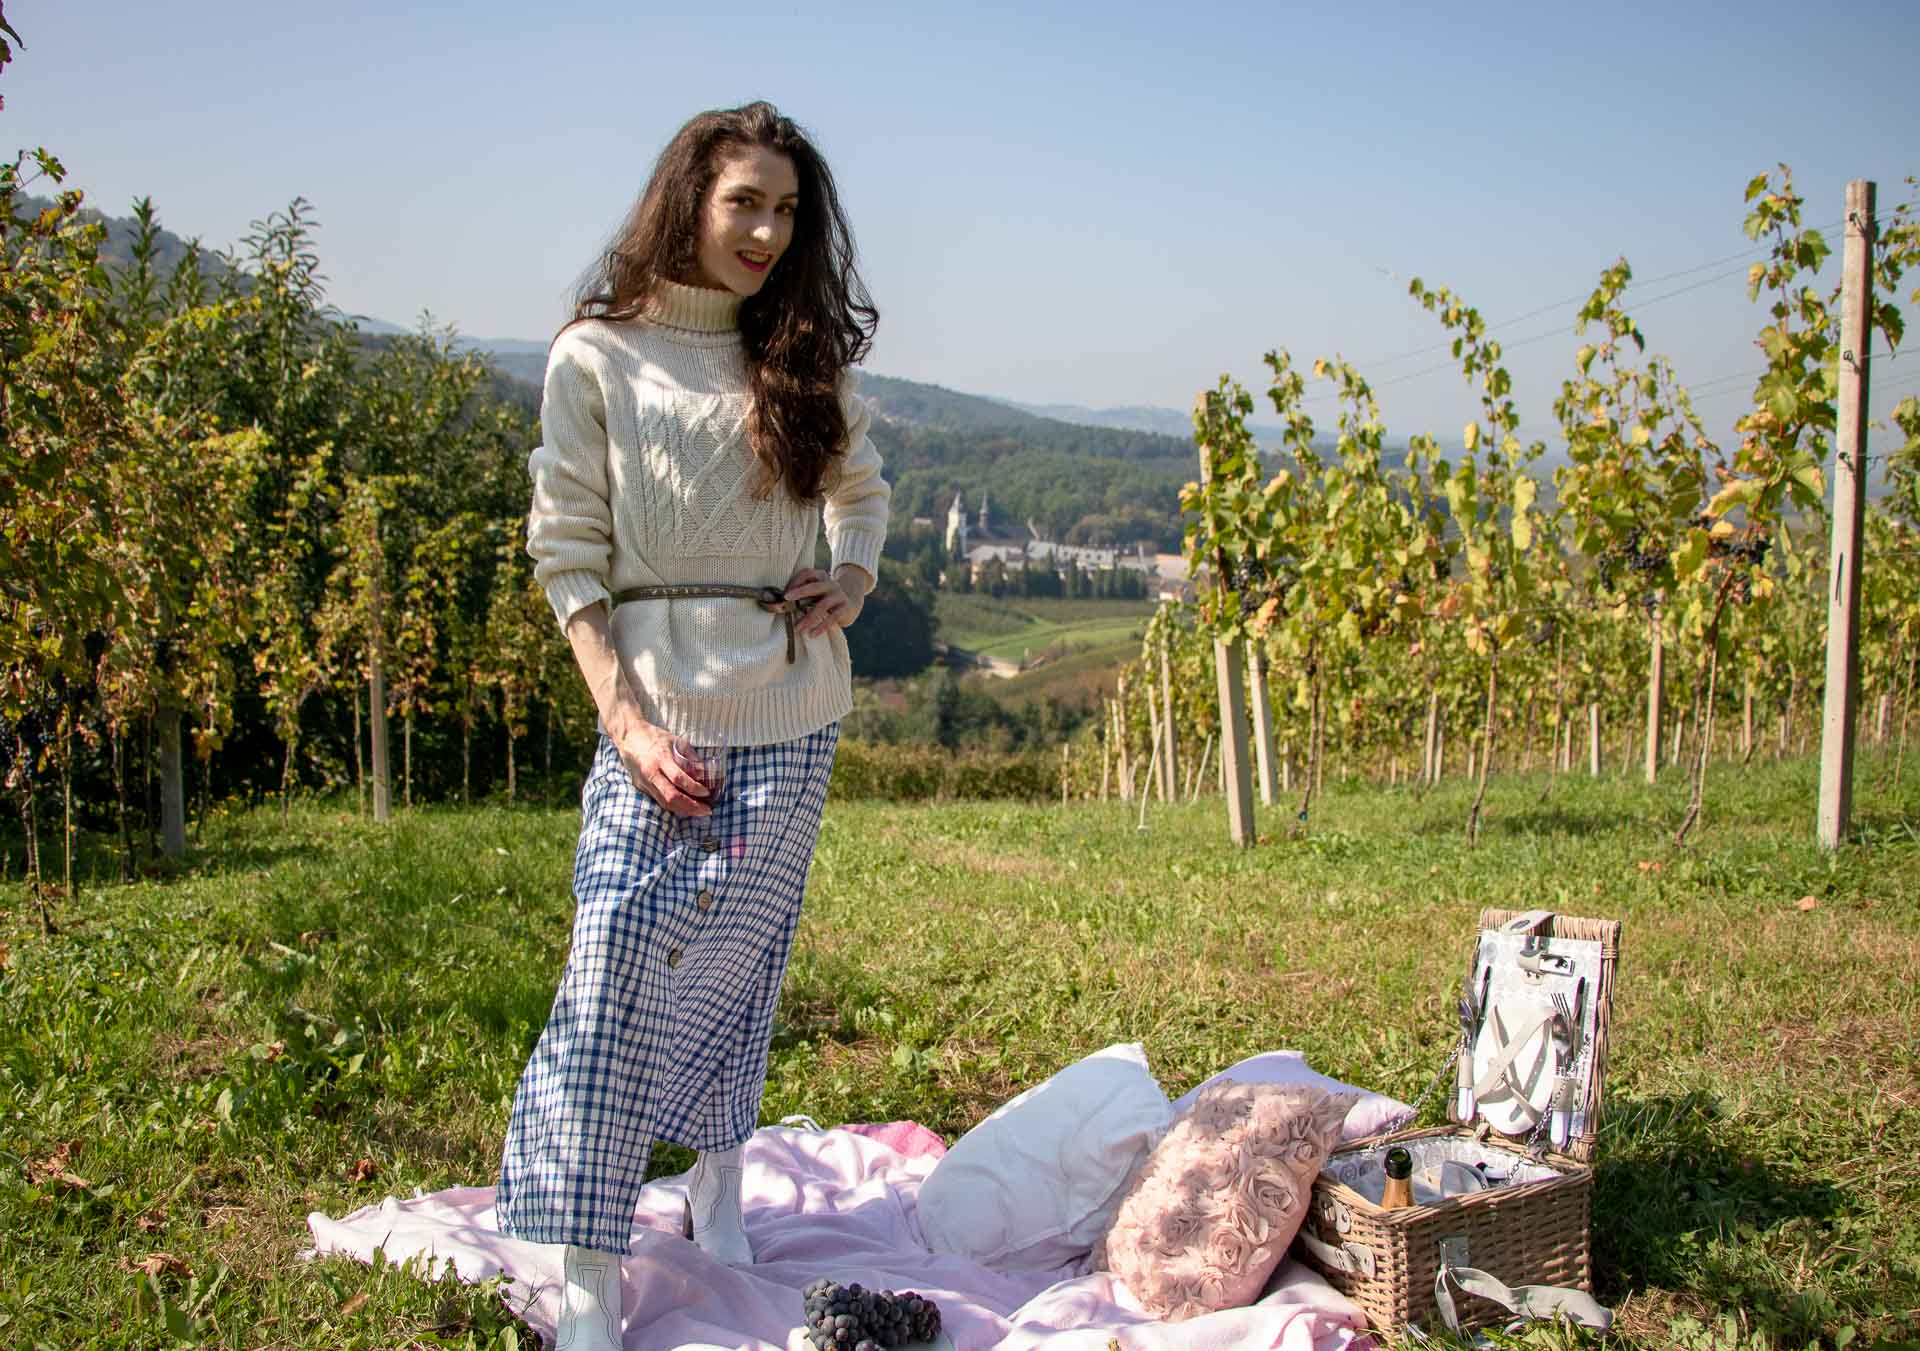 Beautiful Slovenian Fashion Blogger Veronika Lipar of Brunette from Wall Street wearing blue and white check button down Mango dress, oversized white turtleneck sweater, dangling belt, white Ganni cowboy boots, for autumn picnic in countryside